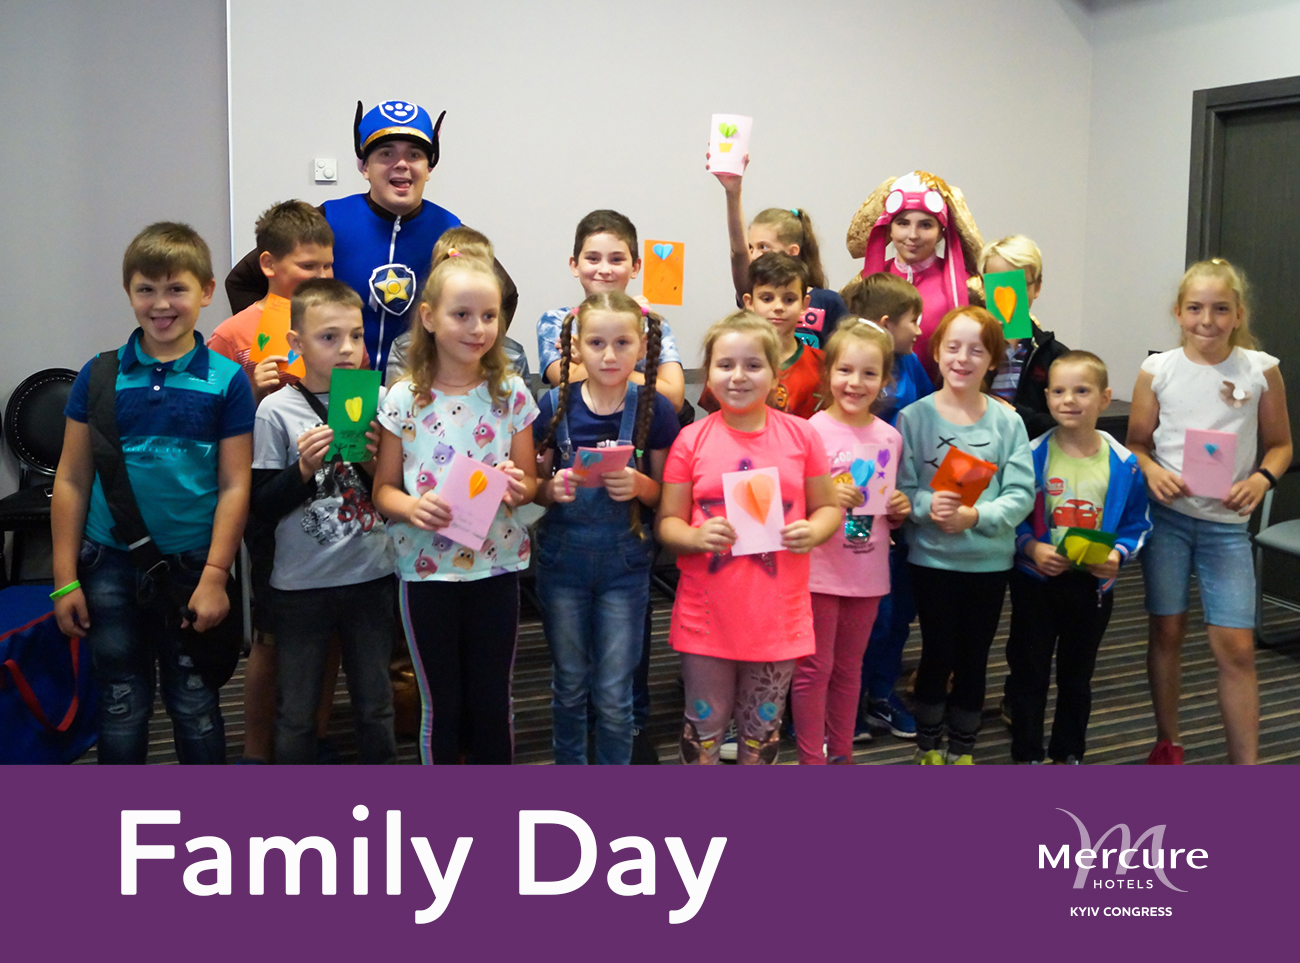 Family Day at Mercure Kyiv Congress